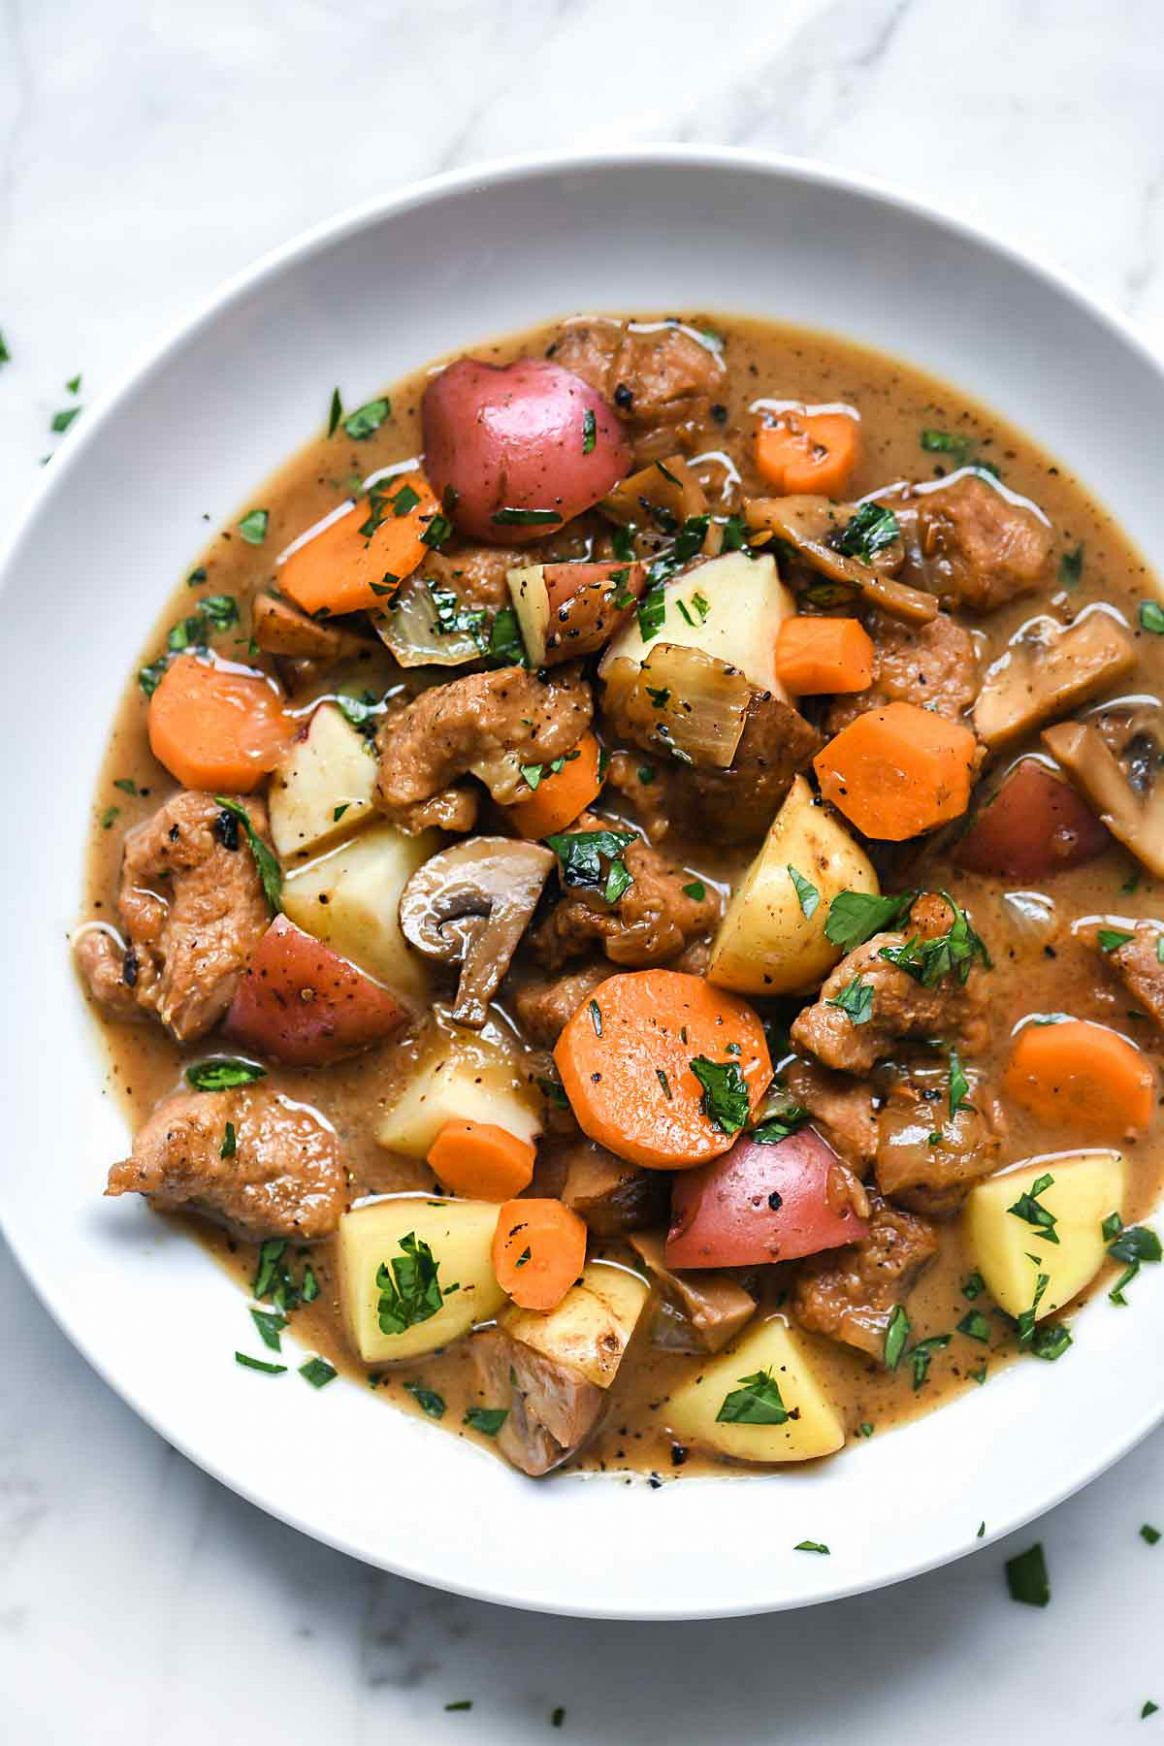 Irish Pork Stew with Stout and Caraway Seeds